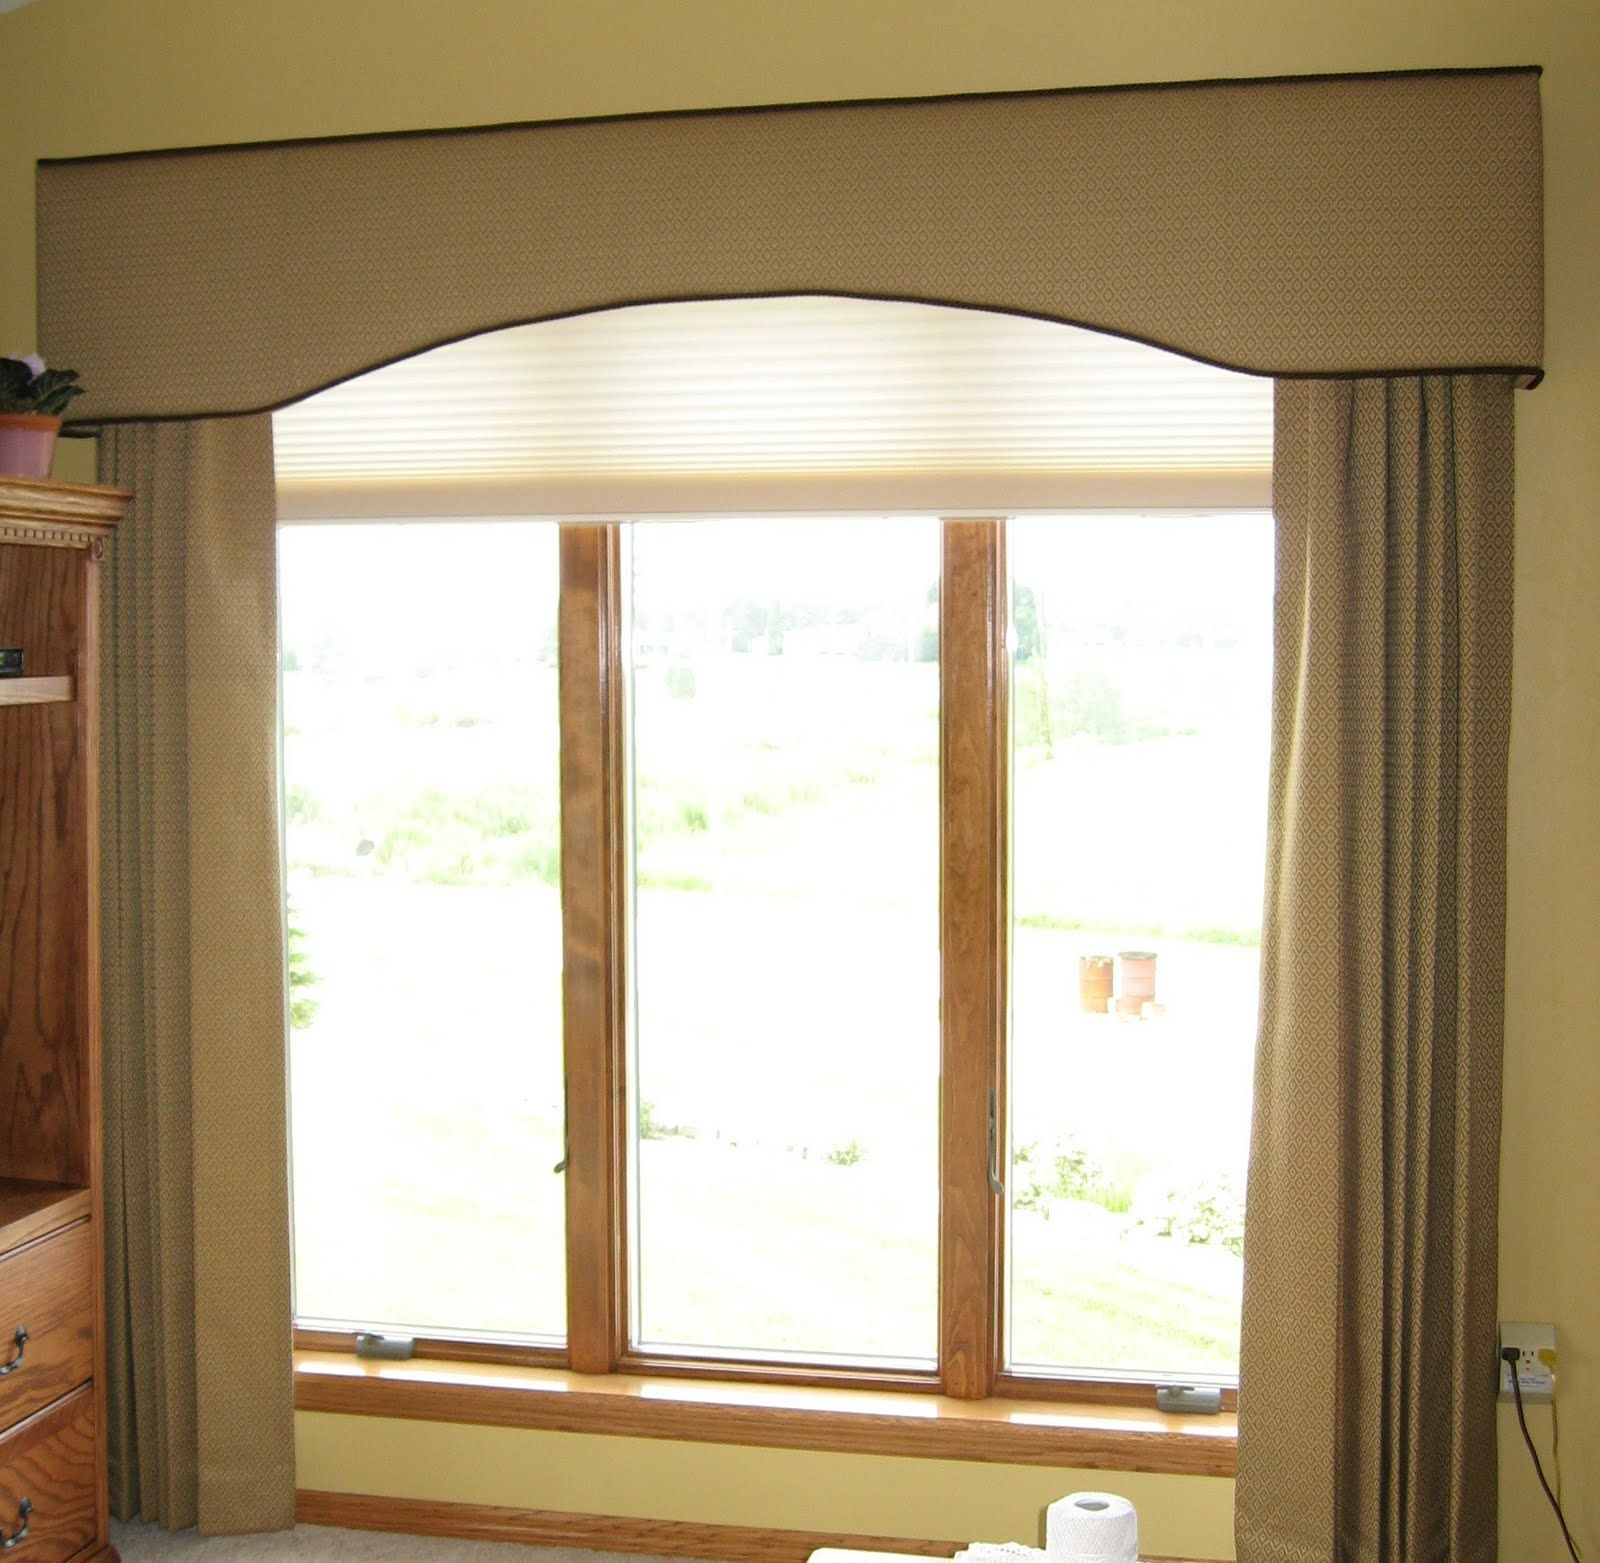 Kitchen Window Dressing Cornice Boards Fashions An Eyebrow Shaped Cornice Board